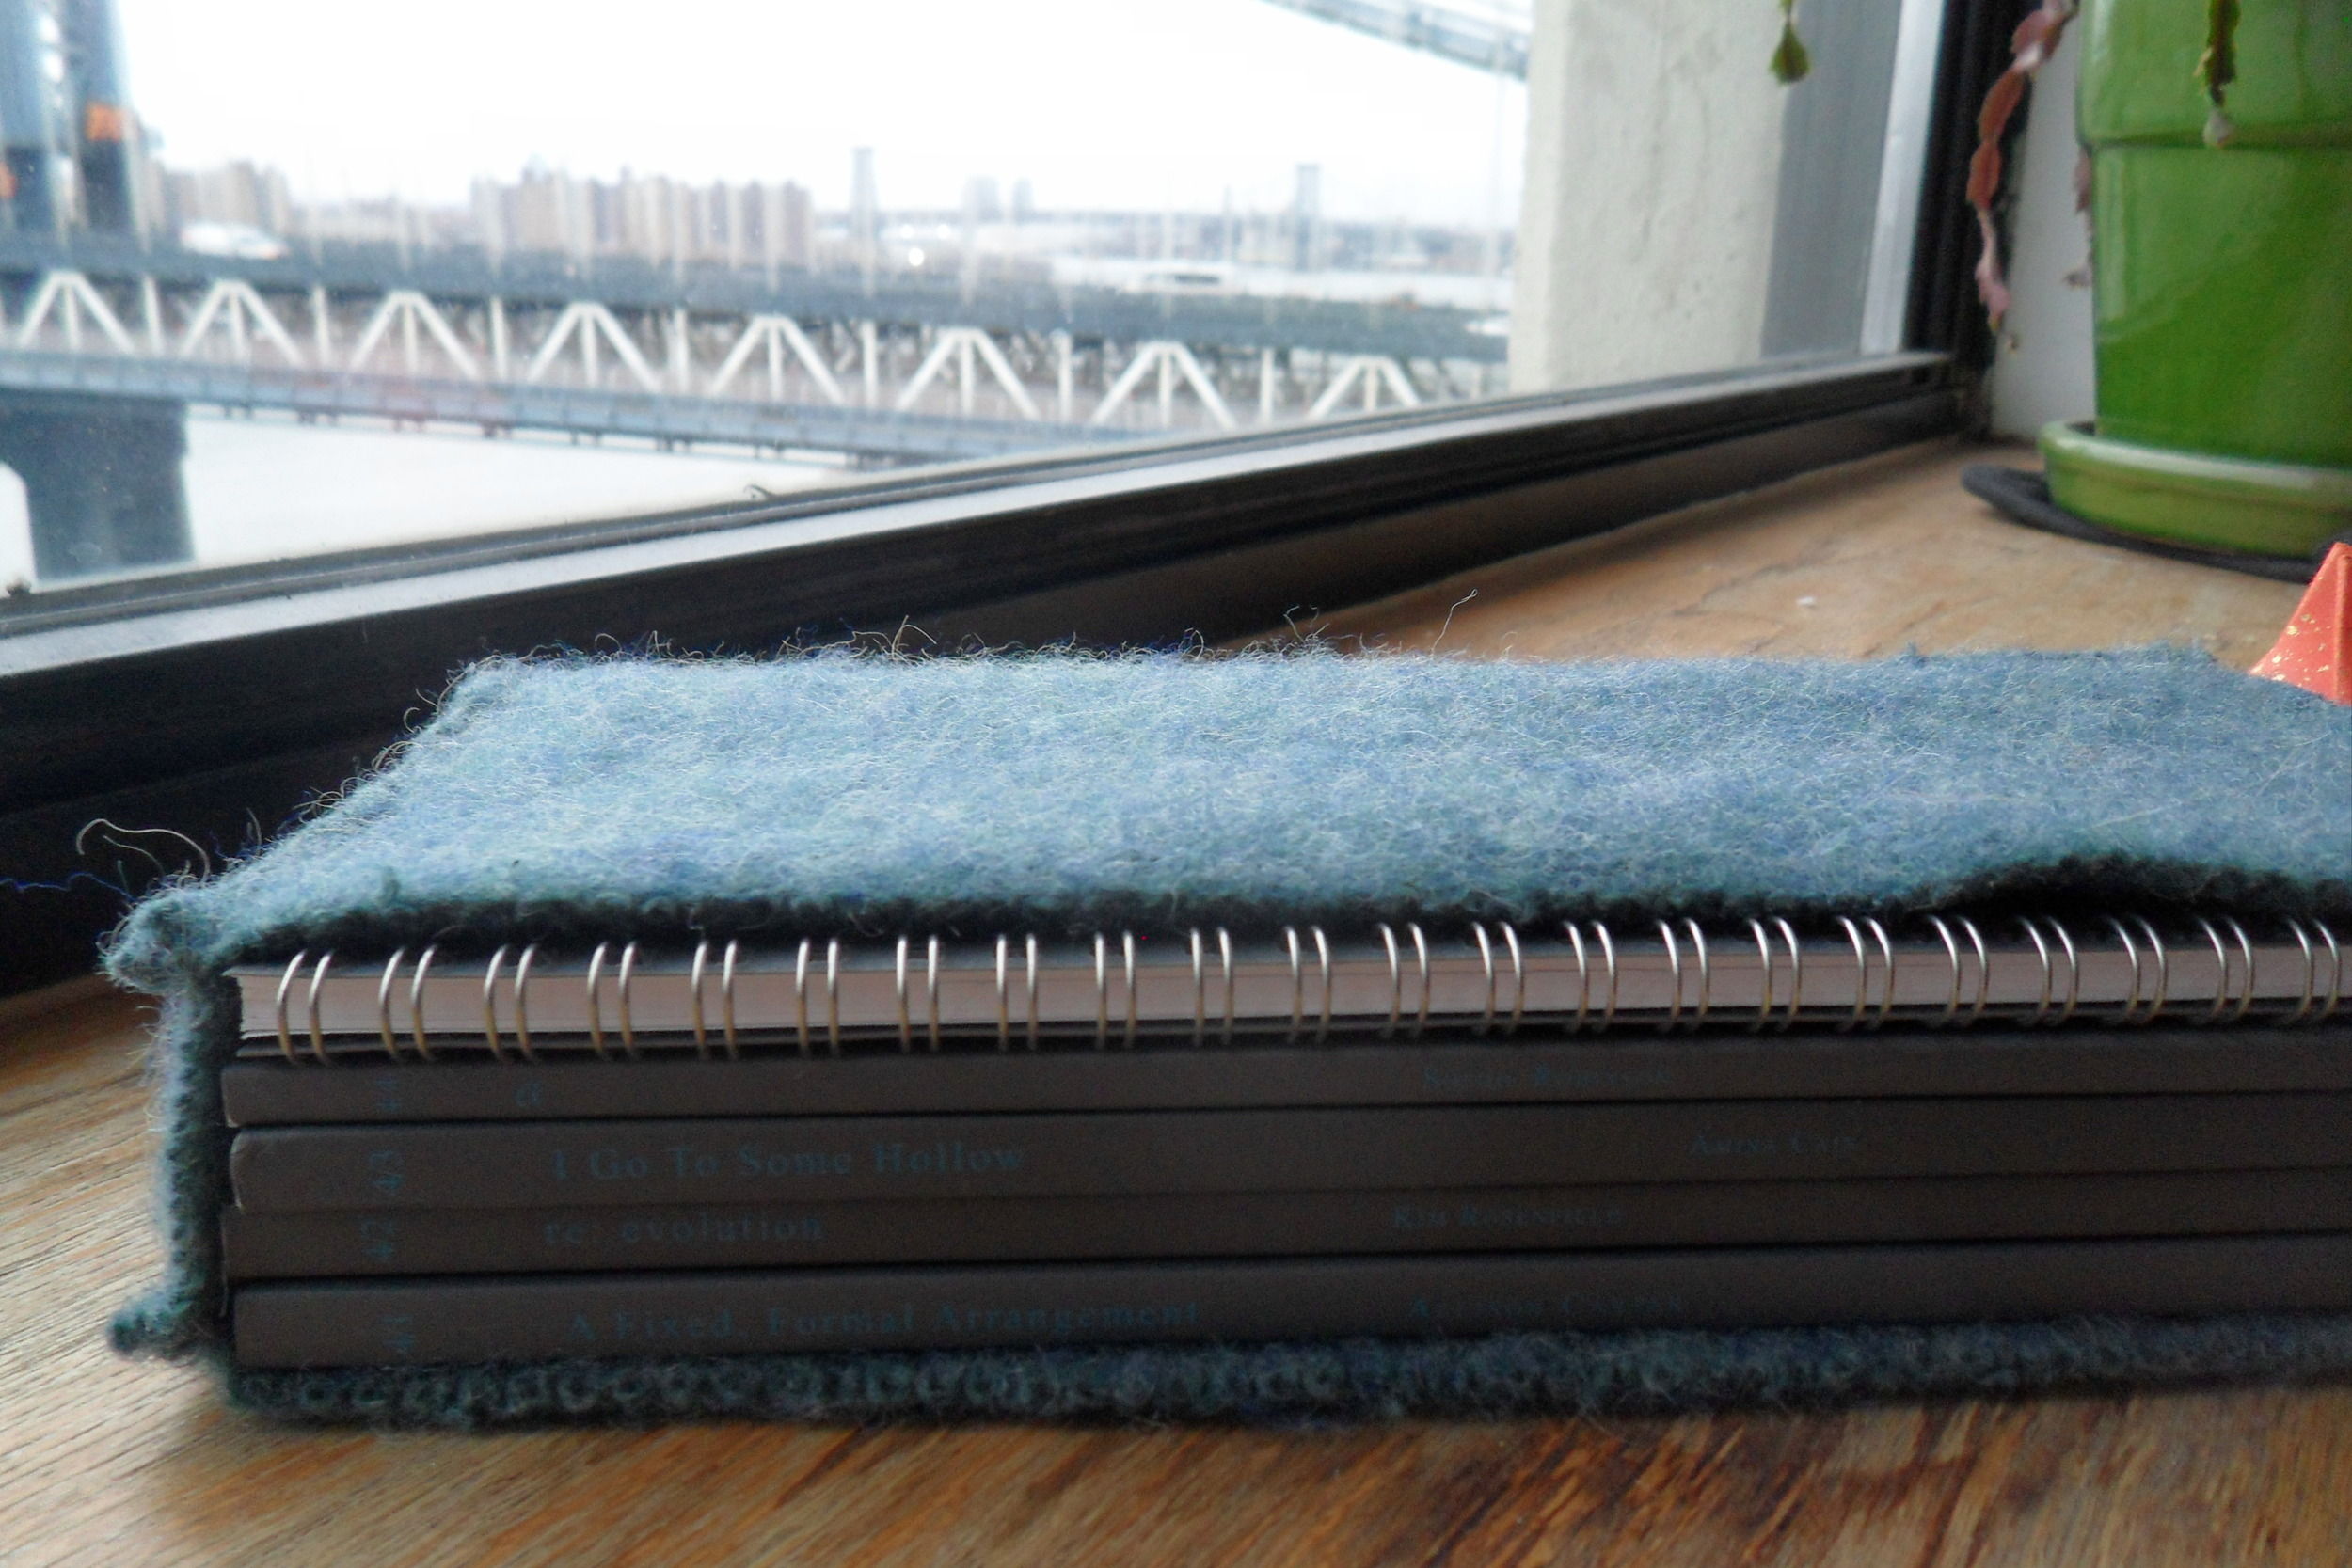 A one of a kind felted book sleeve for Les Figues Press's TrenchArt Series: TRACER